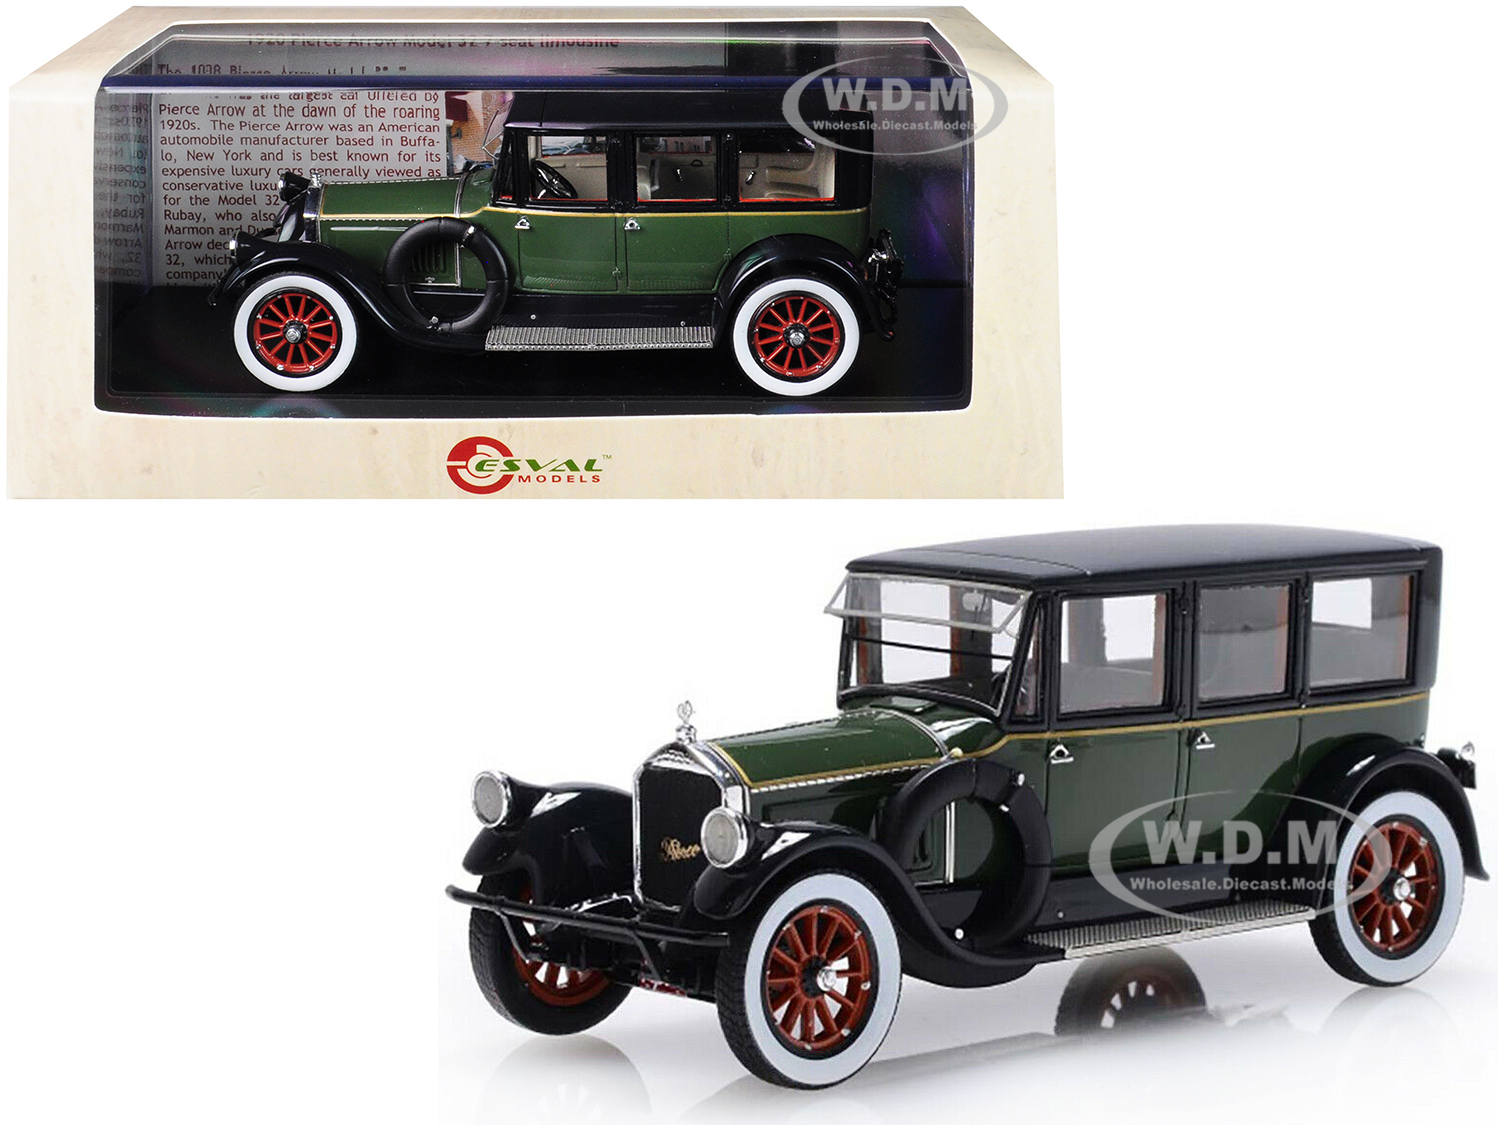 1920 Pierce Arrow Model 32 7-Seat Limousine Green and Black Limited Edition to 250 pieces Worldwide 1/43 Model Car by Esval Models - from $89.99